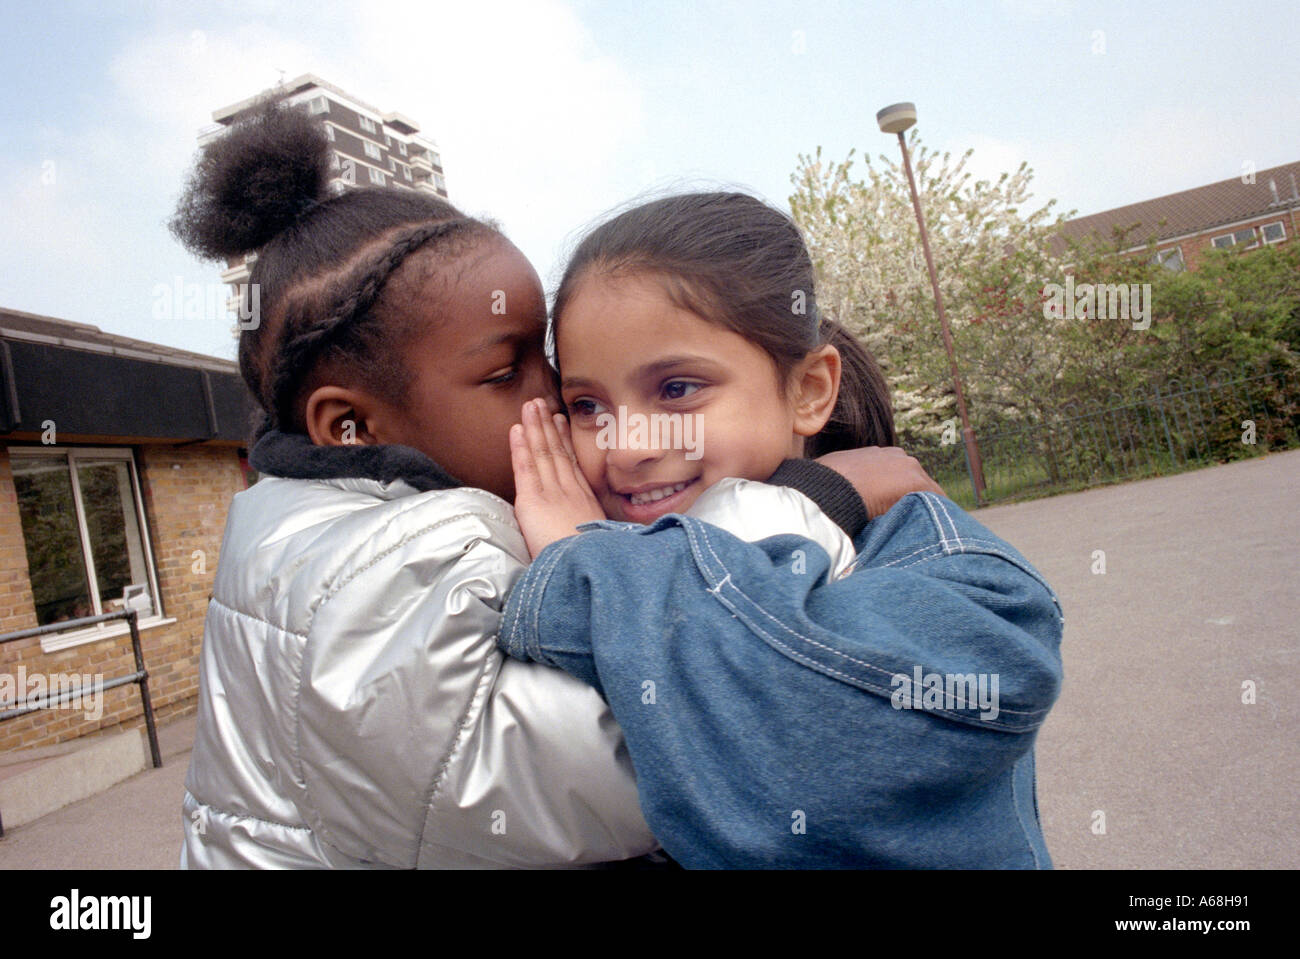 Two girls whispering a secret to each other at break time in primary school. - Stock Image